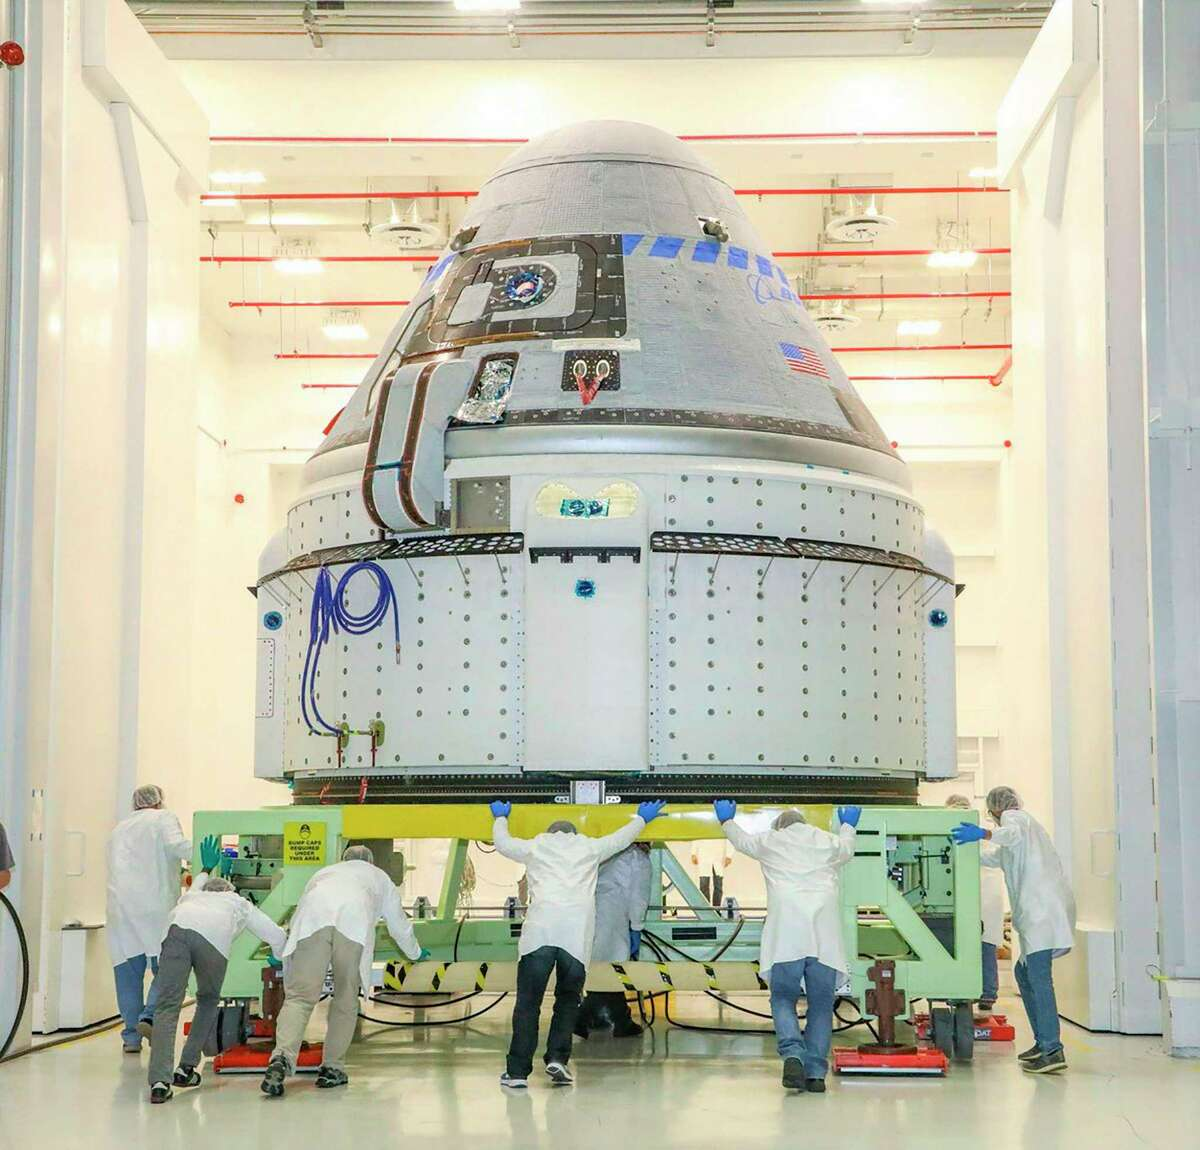 This photo obtained from NASA on Dec. 17, 2019 shows the CST-100 Starliner spacecraft on Boeing's Orbital Flight Test (OFT) viewed on Nov. 2, 2019, while undergoing launch preparations inside the Commercial Crew and Cargo Processing Facility at Kennedy Space Center in Florida. The spacecraft experienced problems after launch and will not be connecting with the International Space Station.